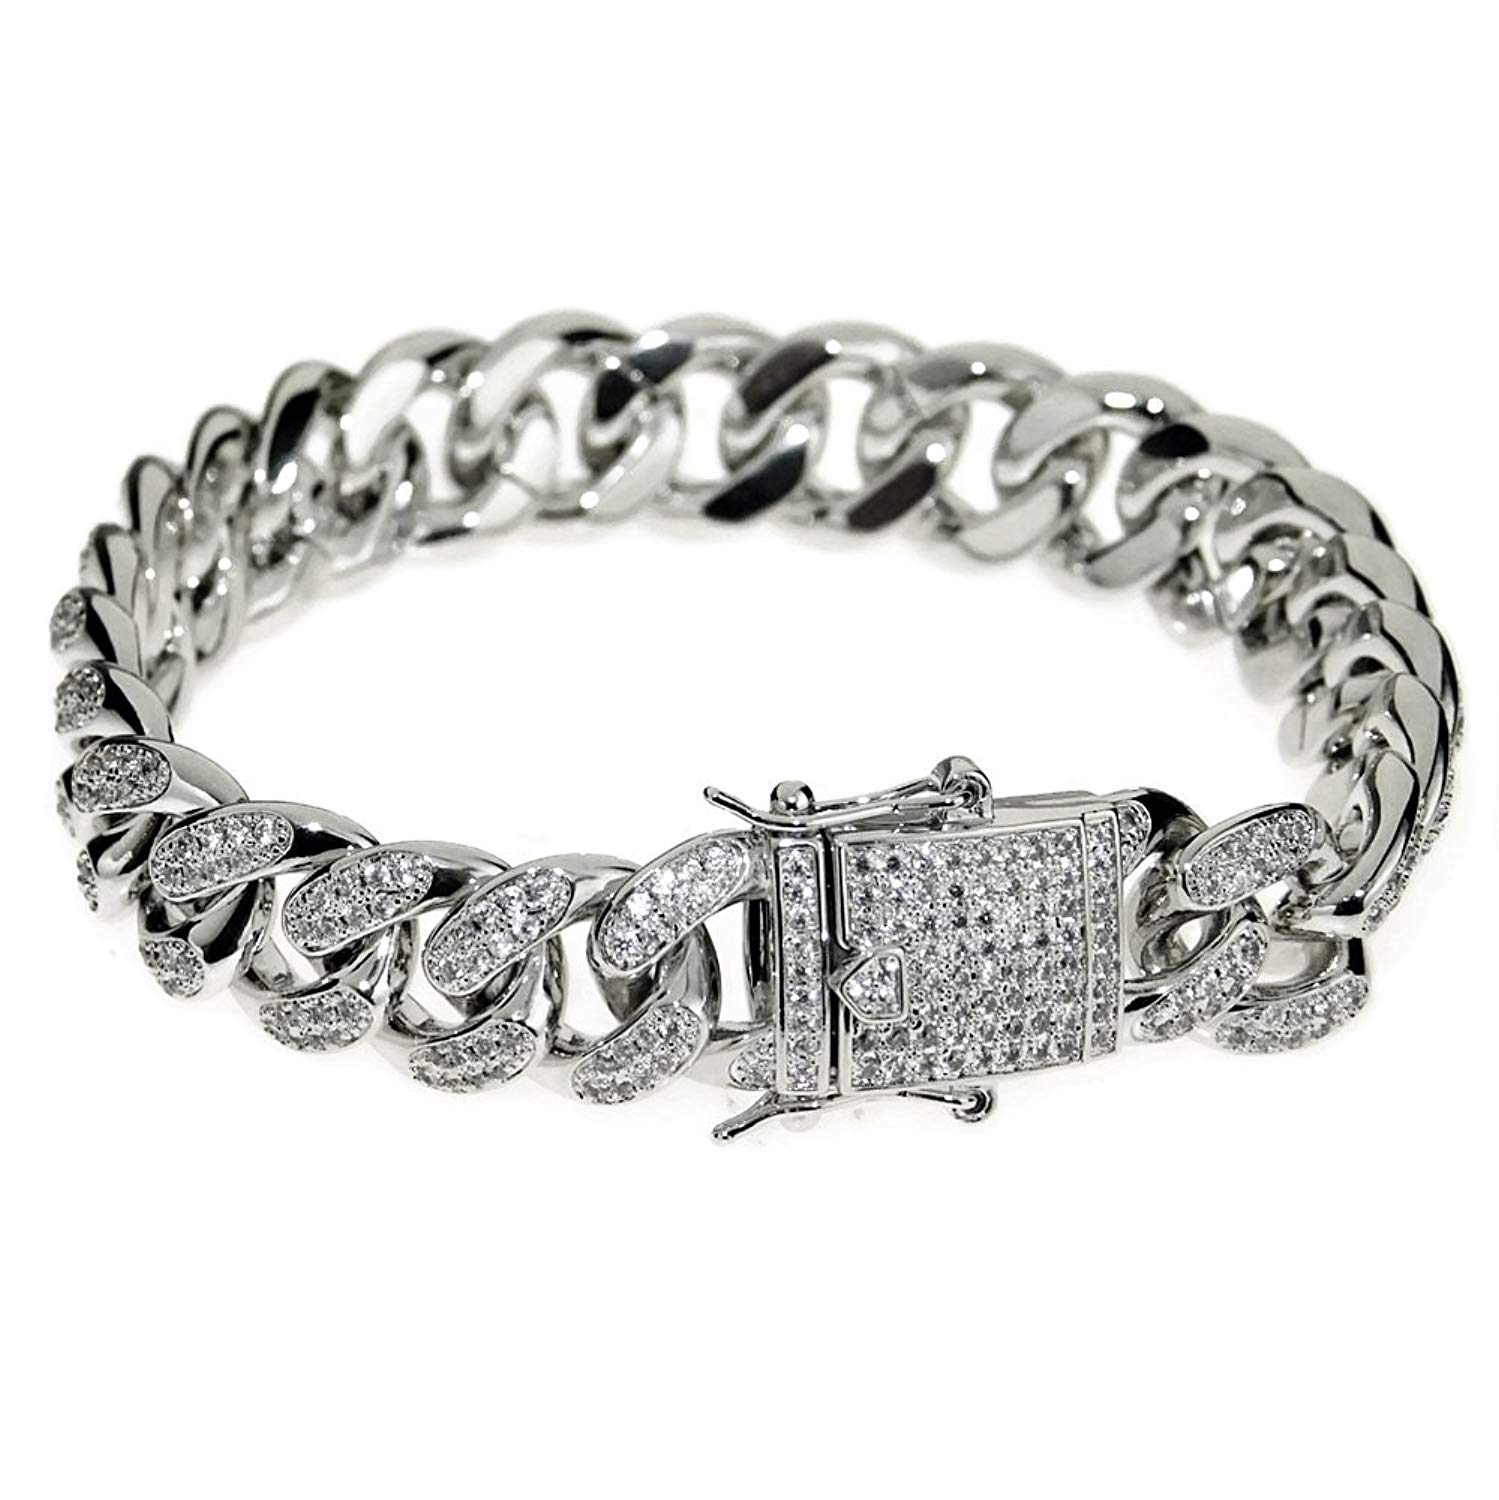 "Mens 14k White Gold Plated Cuban Bracelet Hip Hop Iced Out AAAA CZ Full Stone Bling Links 8"" x 12MM"